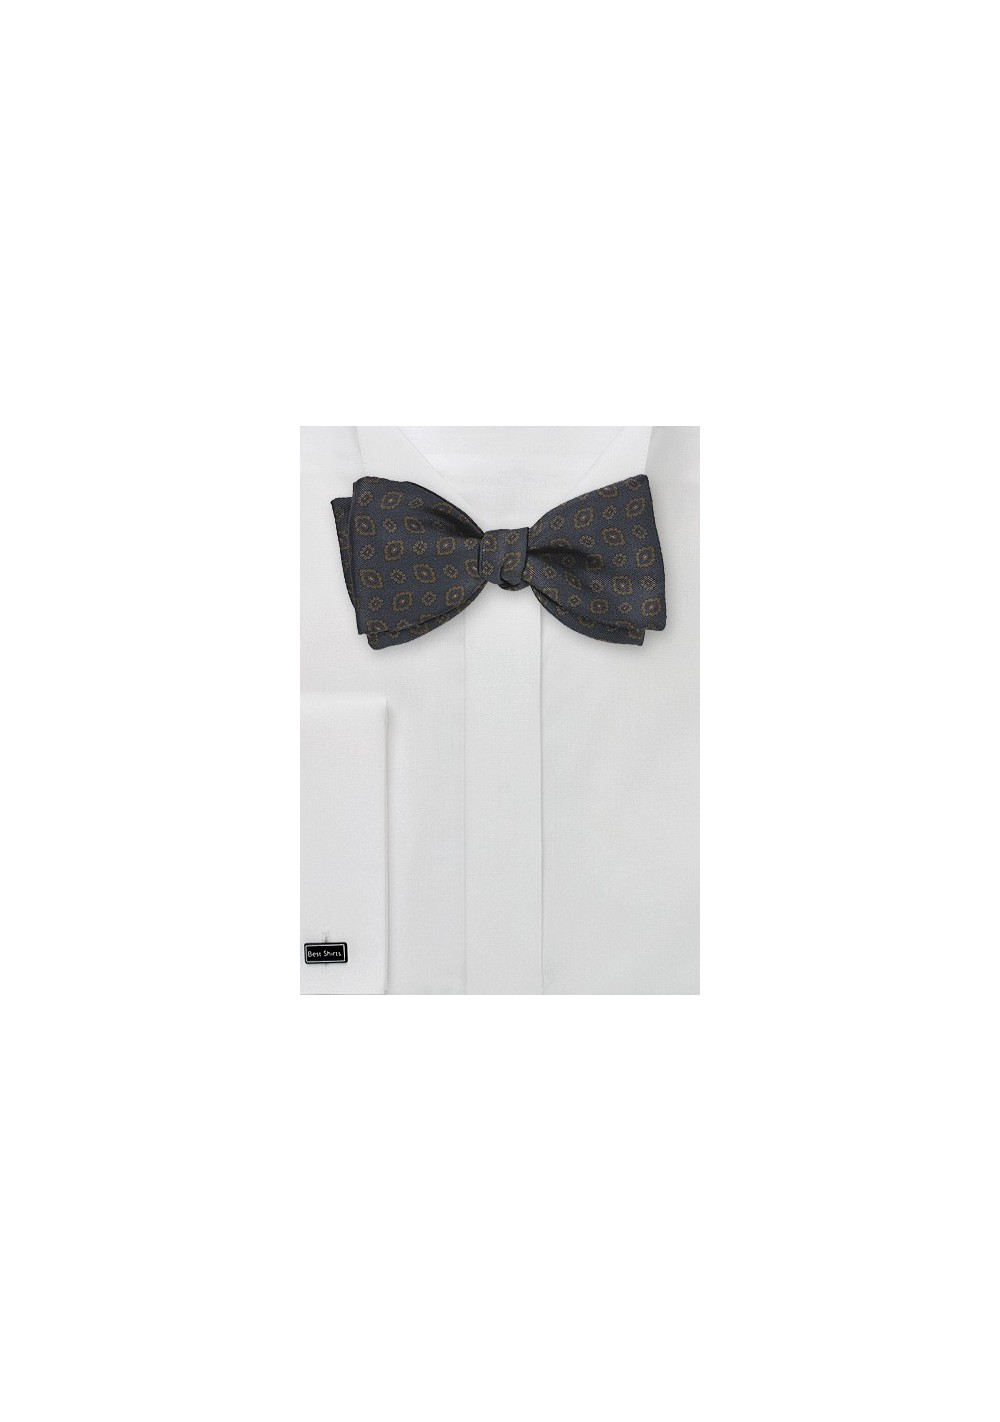 Uber Regal Bow Tie in Navy and Copper